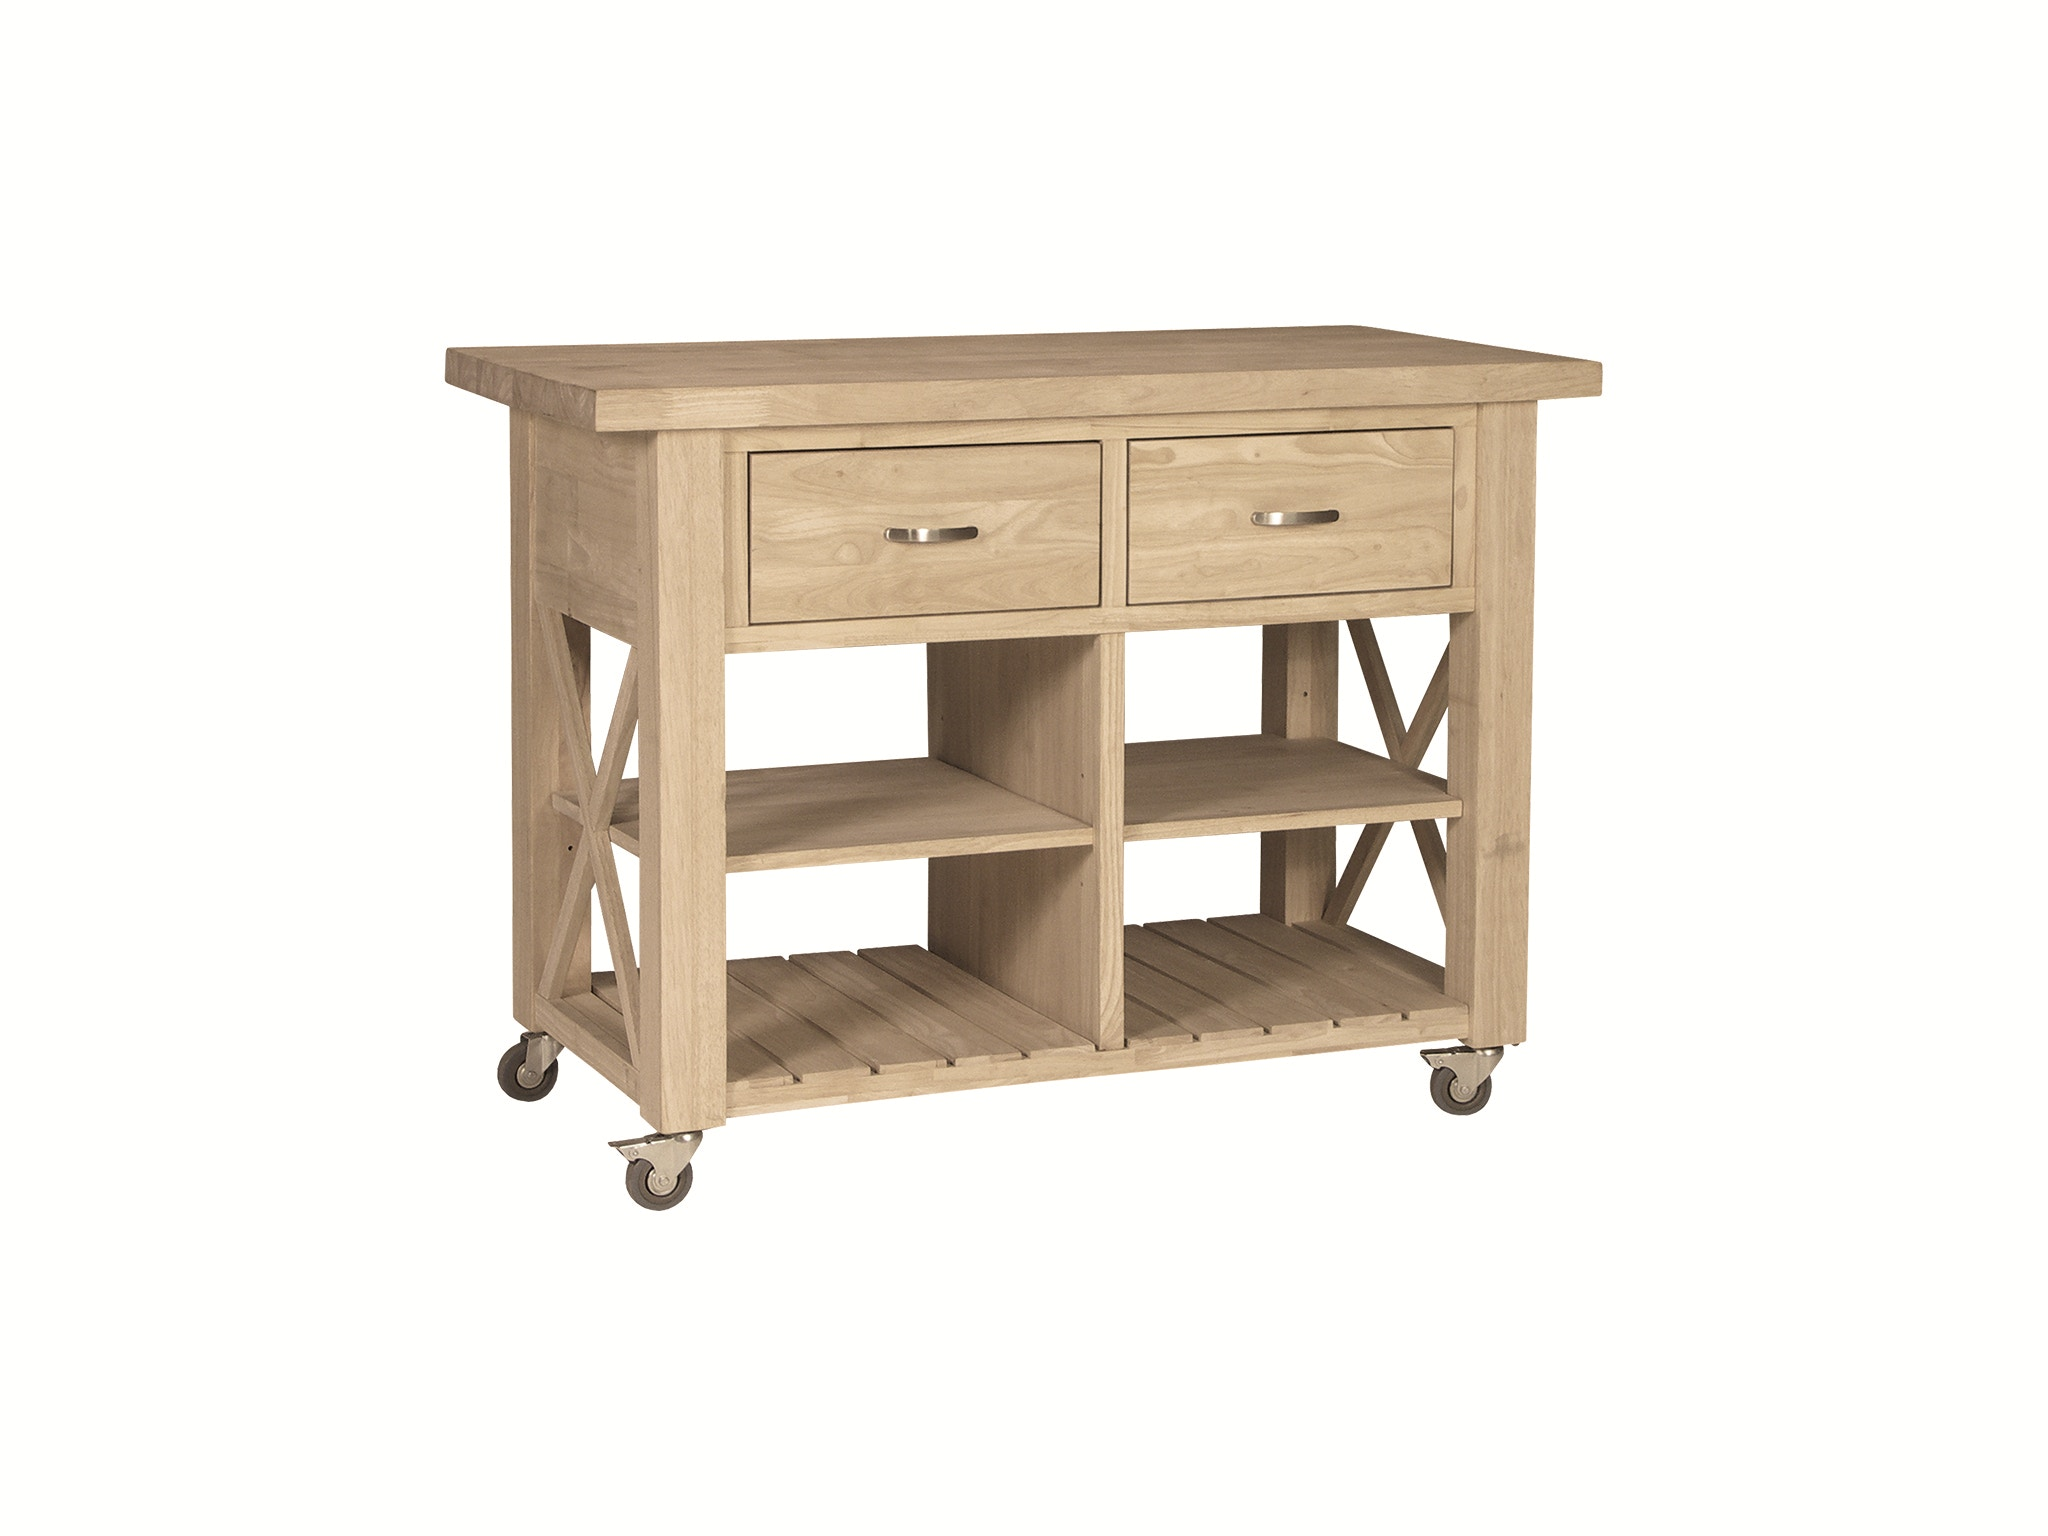 John Thomas Kitchen X-Side Kitchen Island<br><br>Two adjustable shelves, full extension glides, three hooks on right side